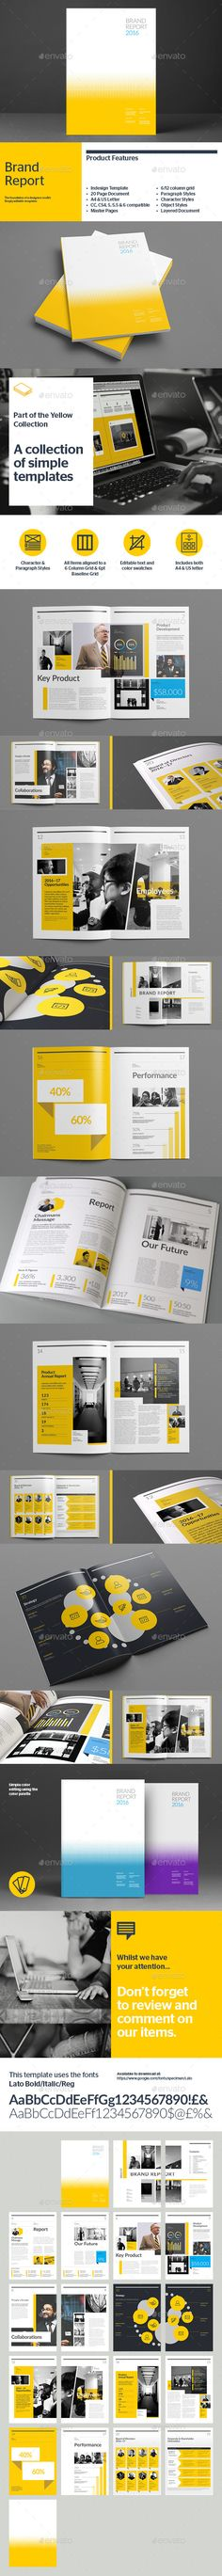 Annual report v2 2018 indesign indd clean identity download annual report v2 2018 indesign indd clean identity download httpsgraphicriveritemannual report v2 20 annual report template design maxwellsz